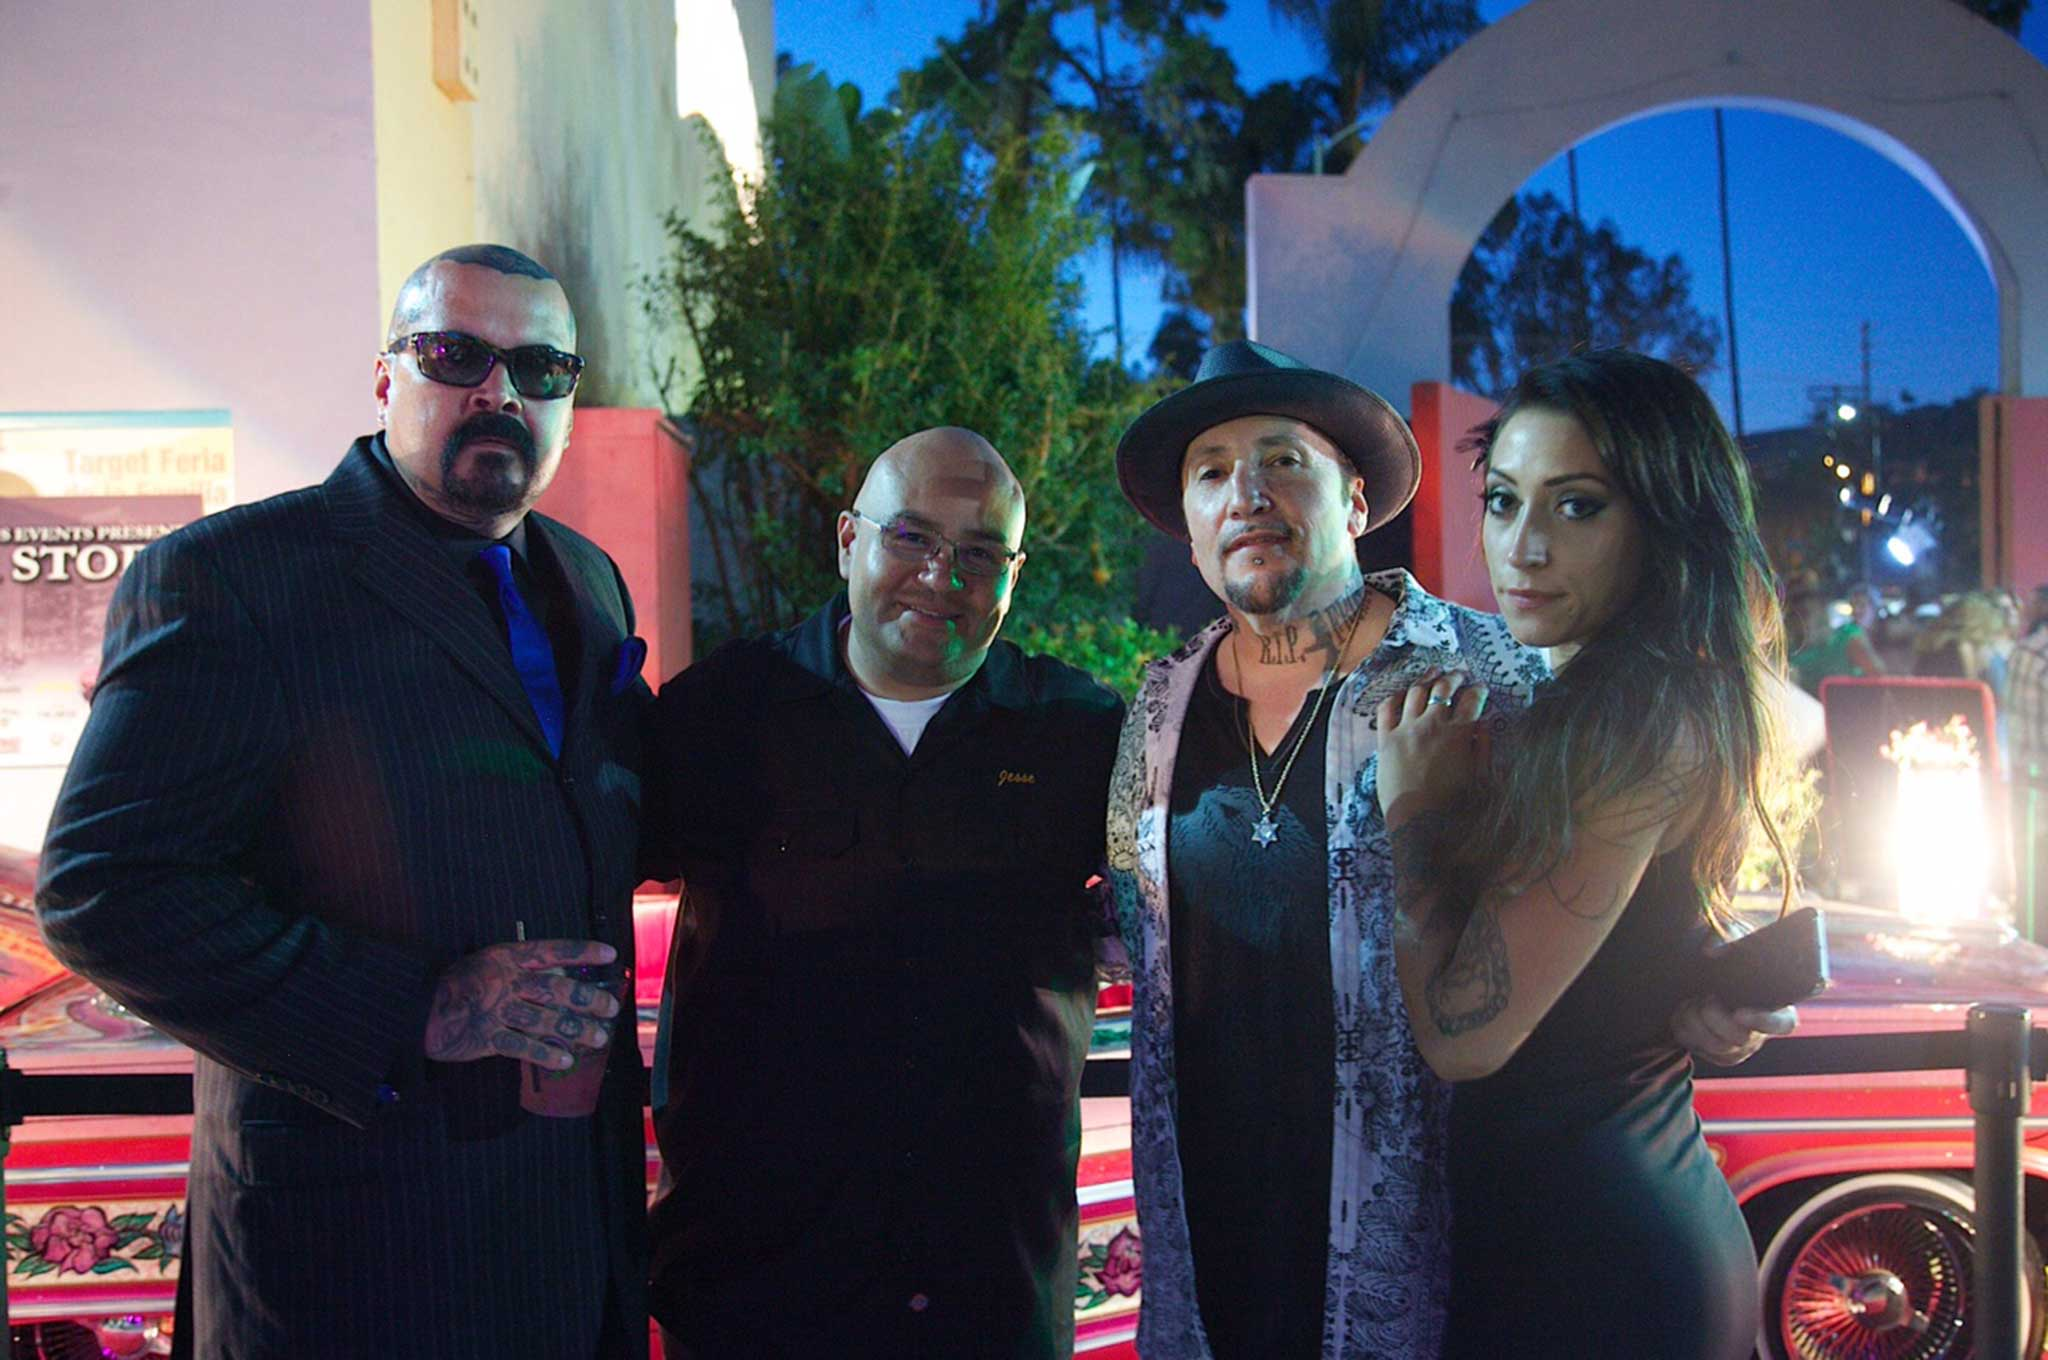 LA Story host Compton Dave poses for a photo in front of Gypse Rose with Jesse Valdez and famed tattoo artist Freddy Negrete